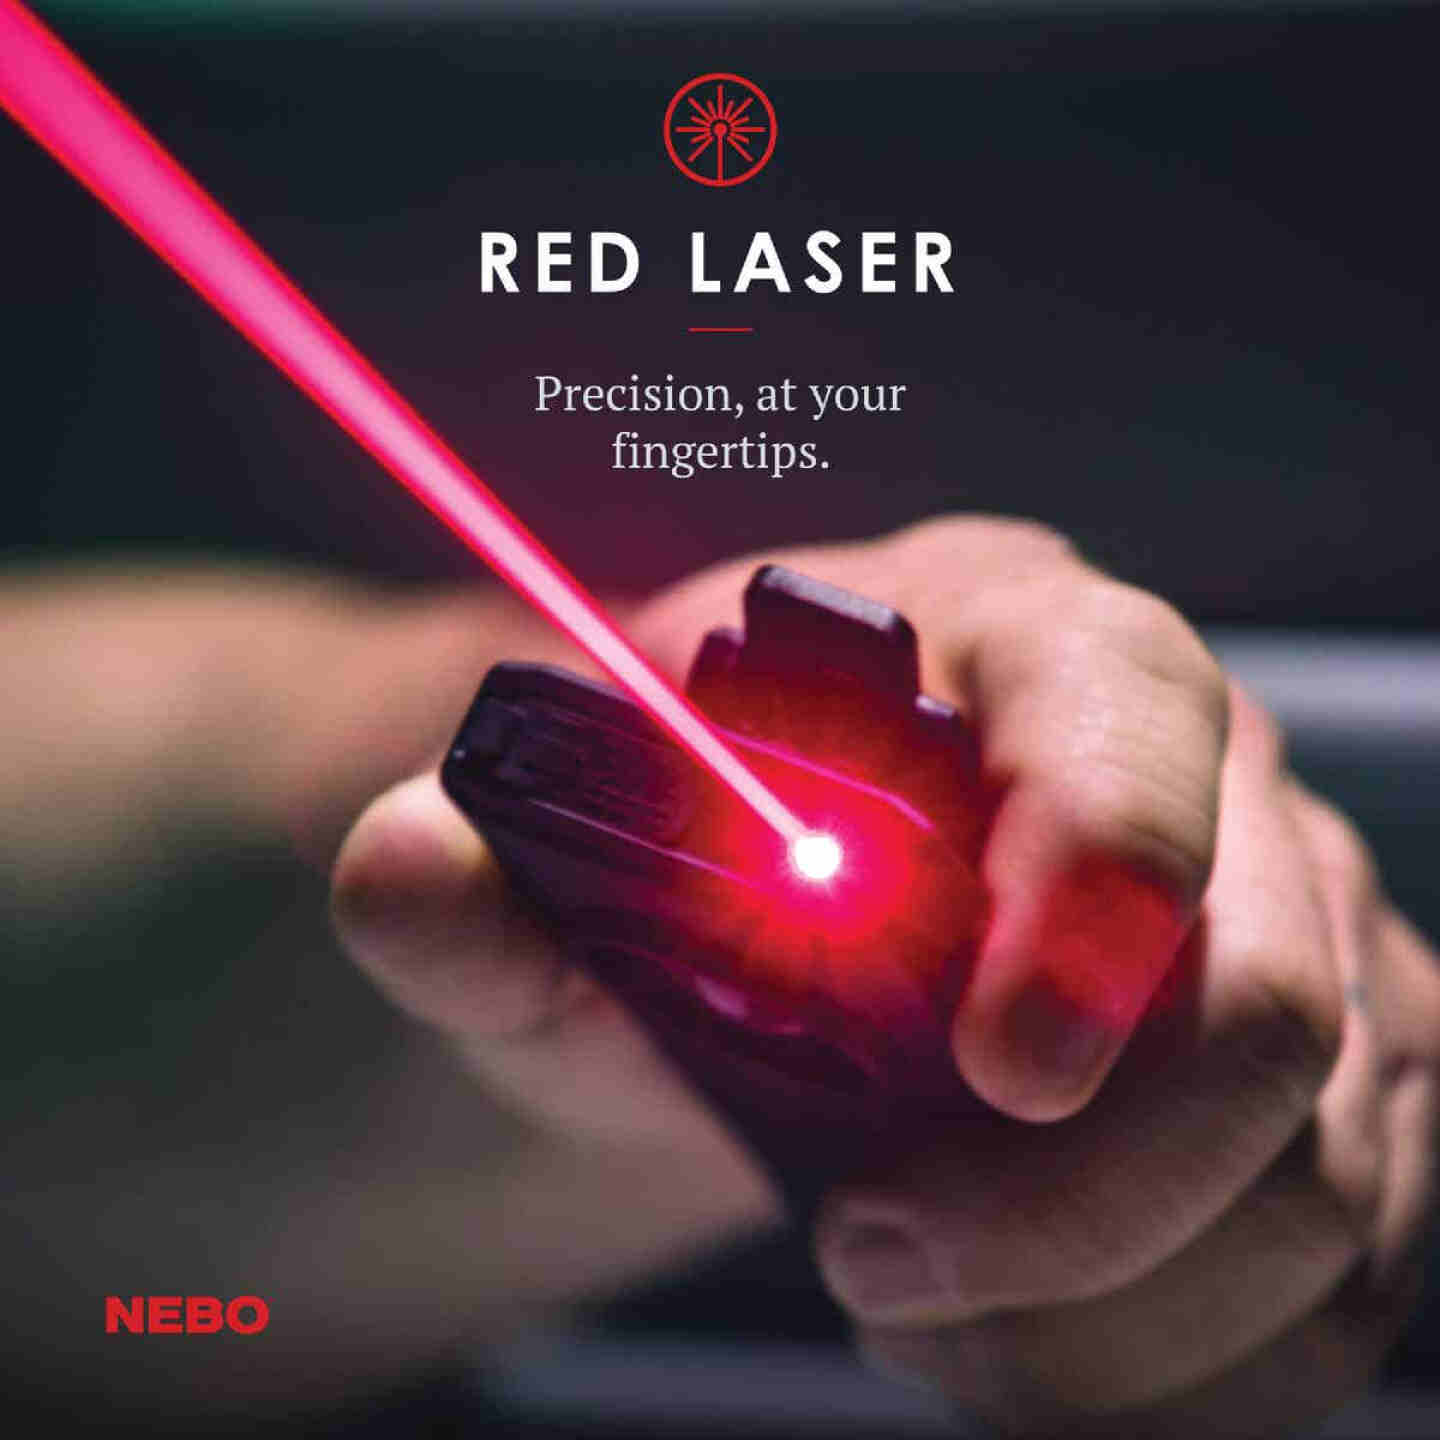 Nebo Slim+ LED Anodized Aluminum Rechargeable Flashlight with Red Laser Pointer Image 3